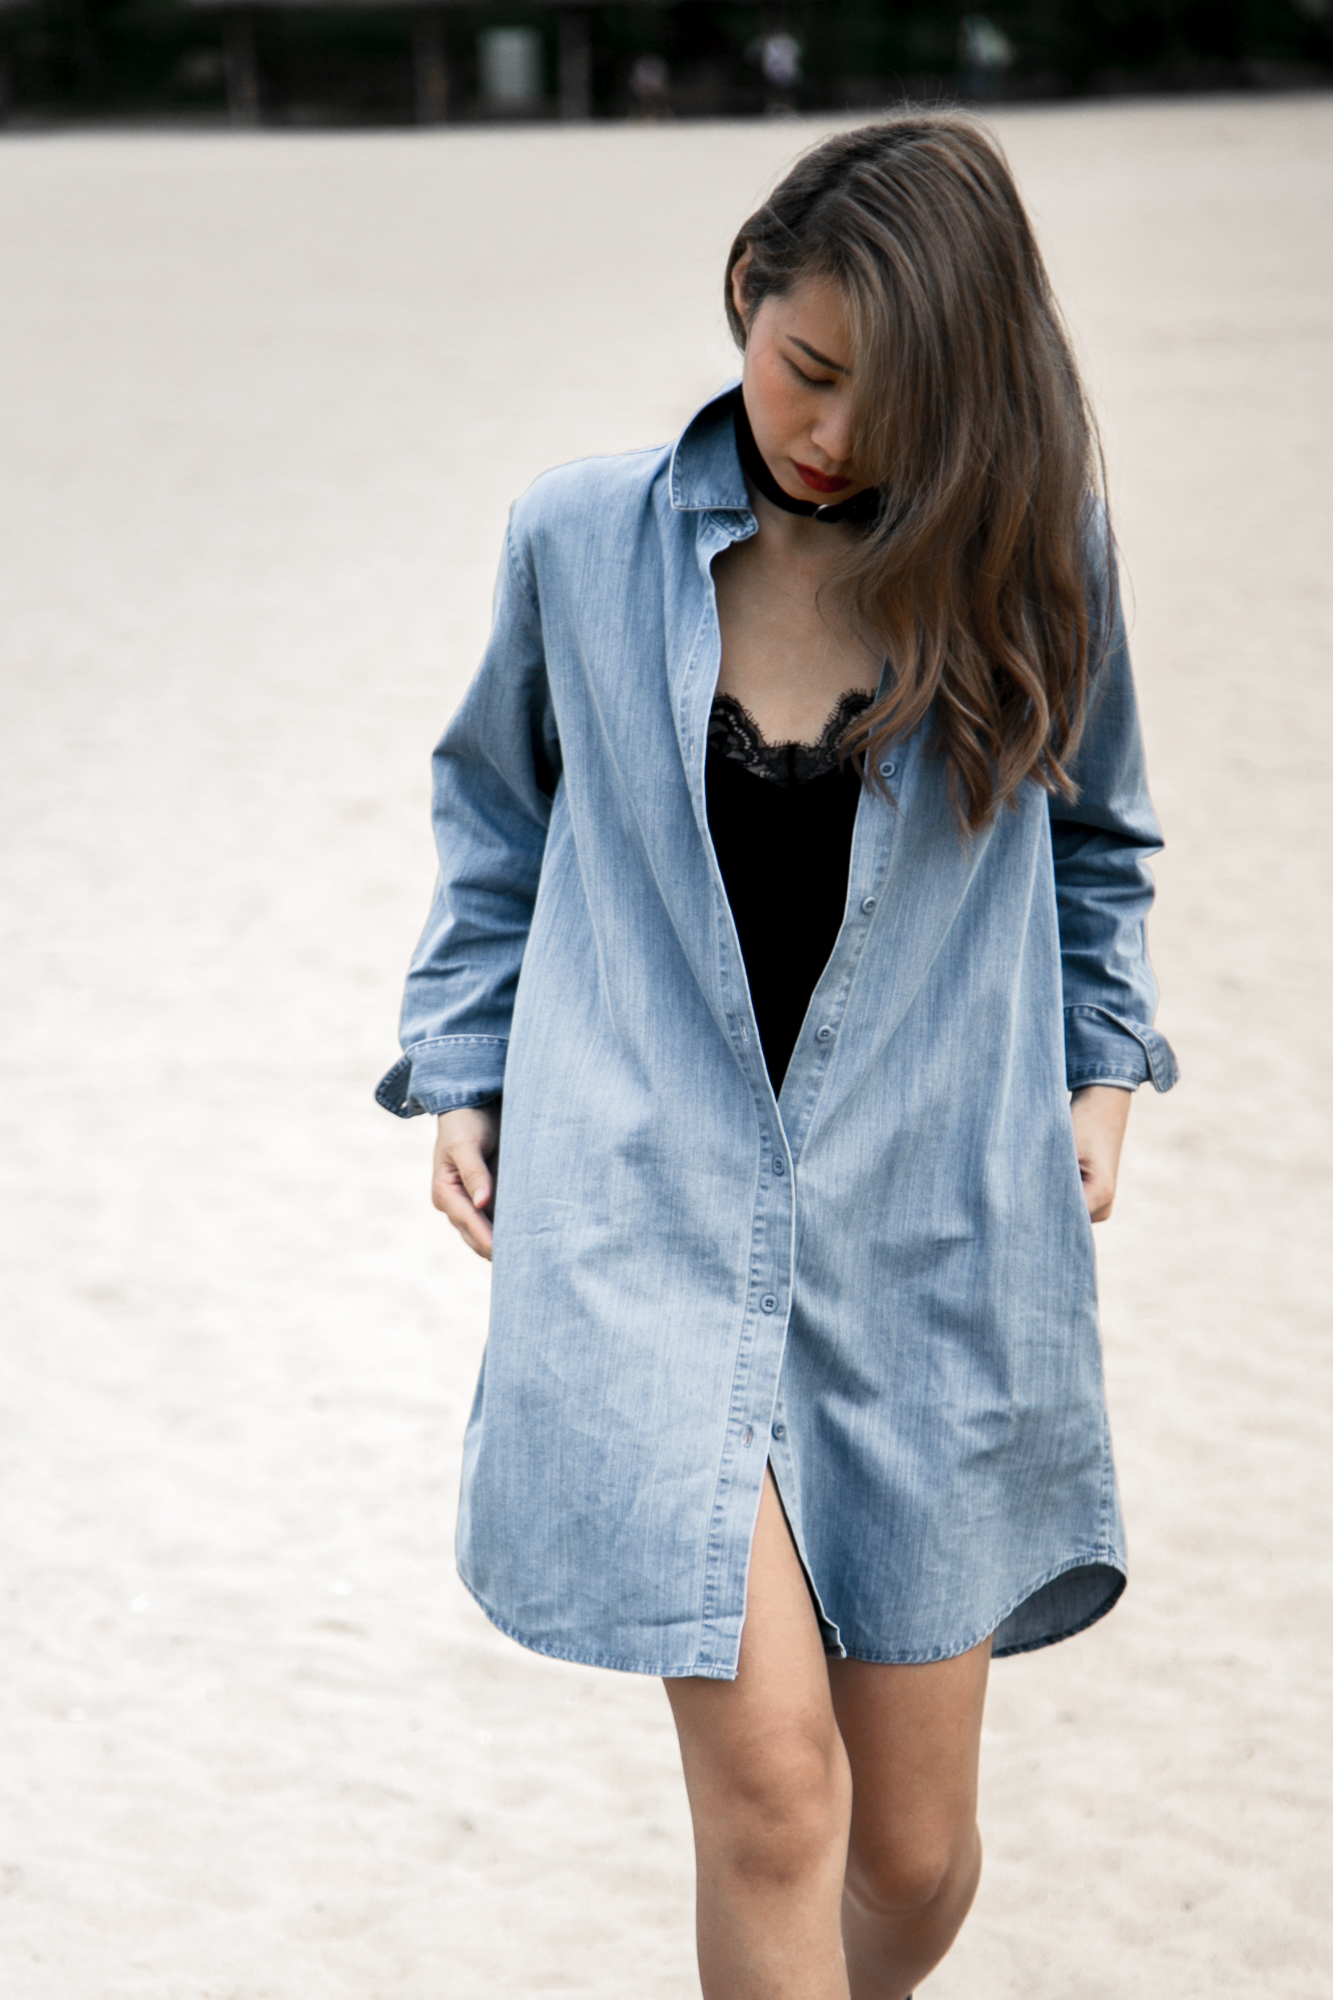 twee-x-grana-get-your-autumn-wardrobe-ready-with-denim-pieces-09